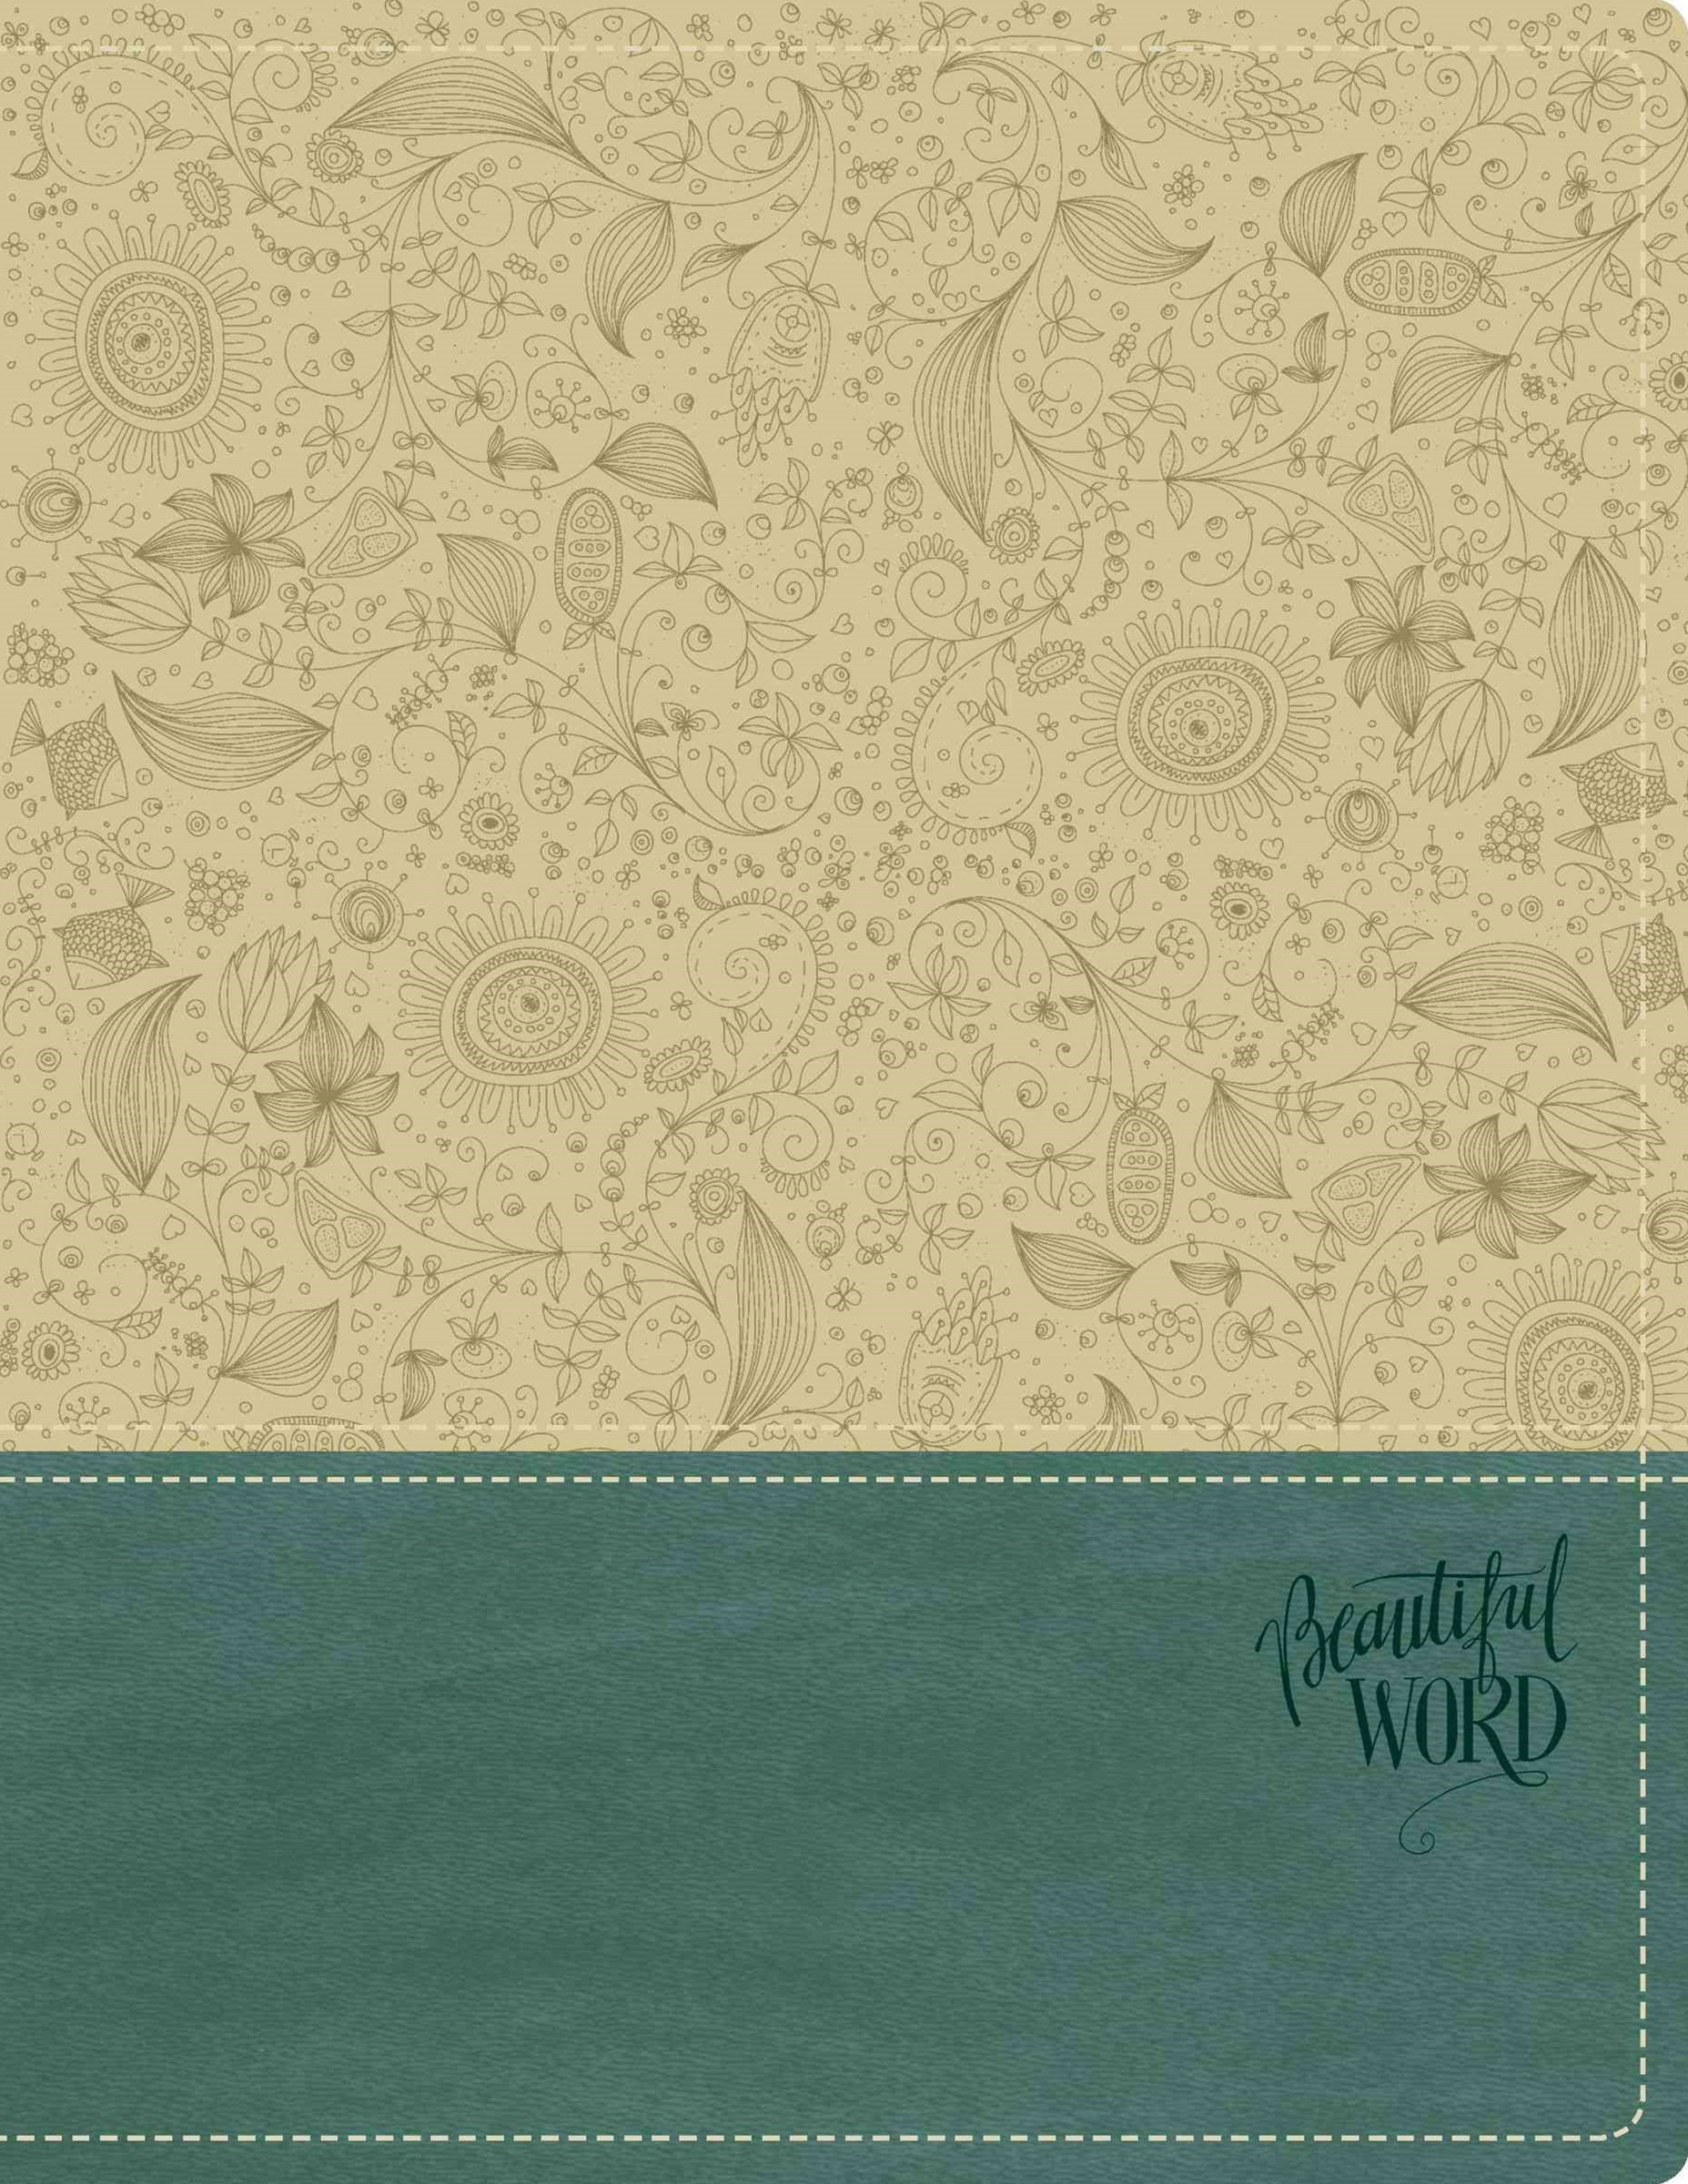 NKJV Beautiful Word Bible [Italian Duo-Tone Taupe/Peacock Blue]